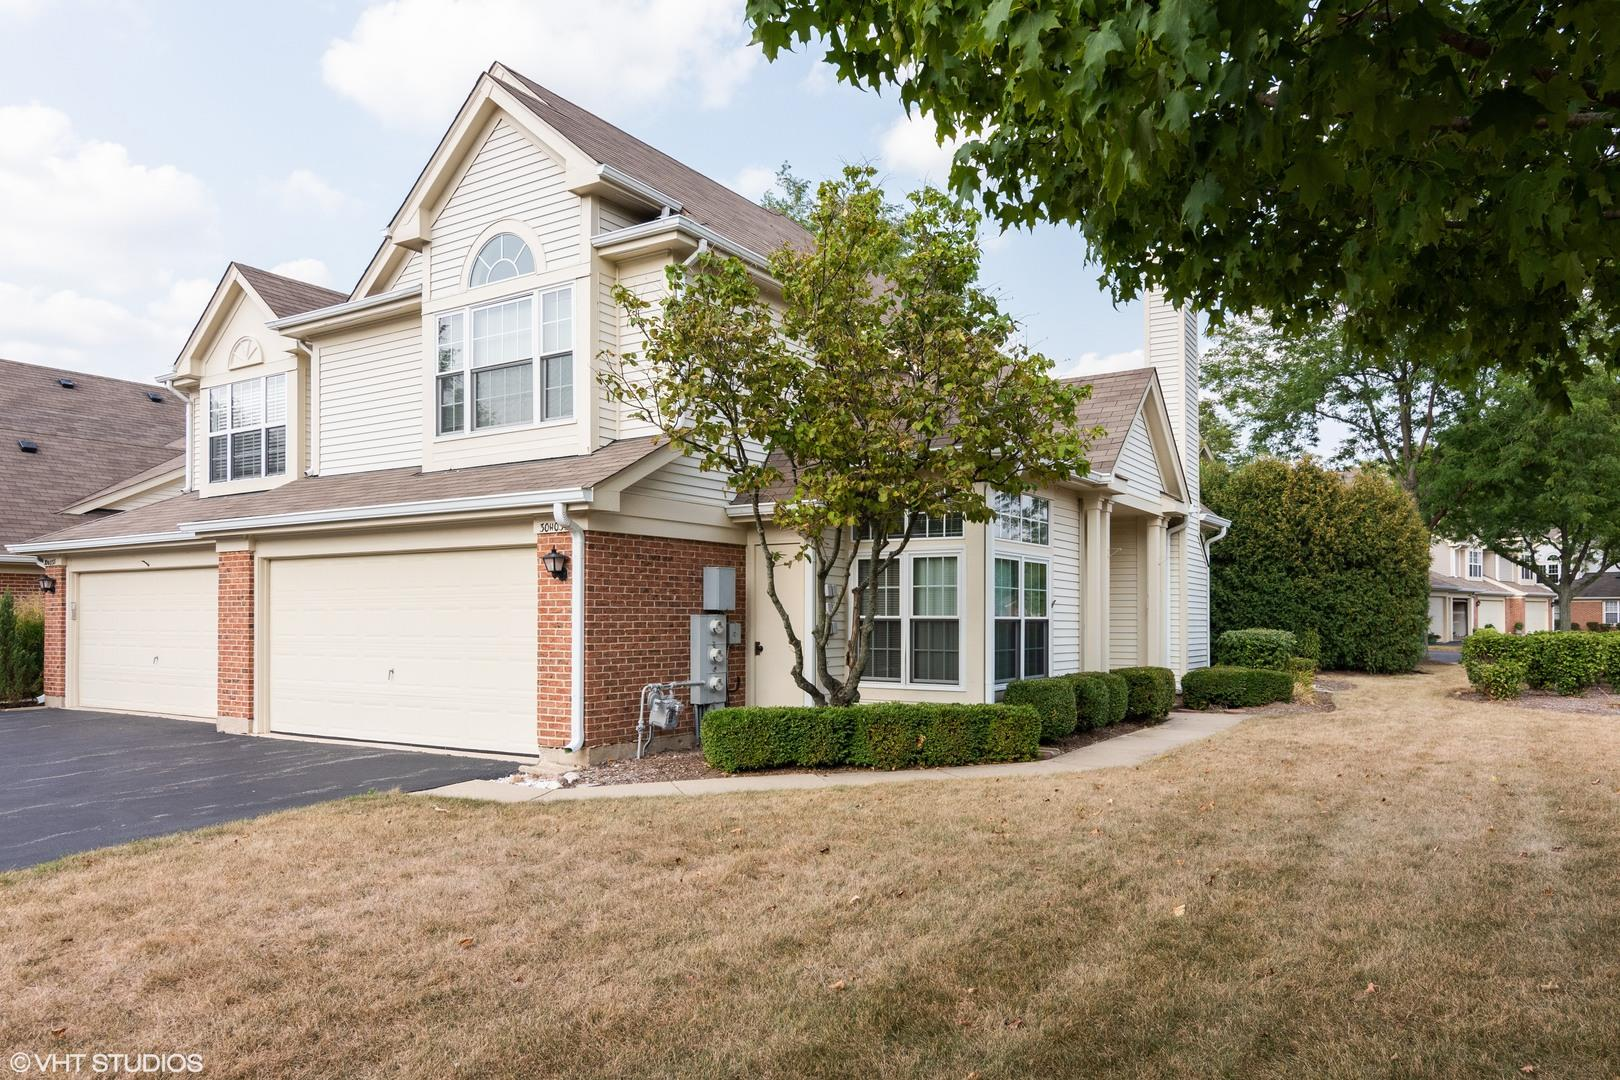 30W035 Princeton Court, Warrenville, IL 60555 - #: 10838276